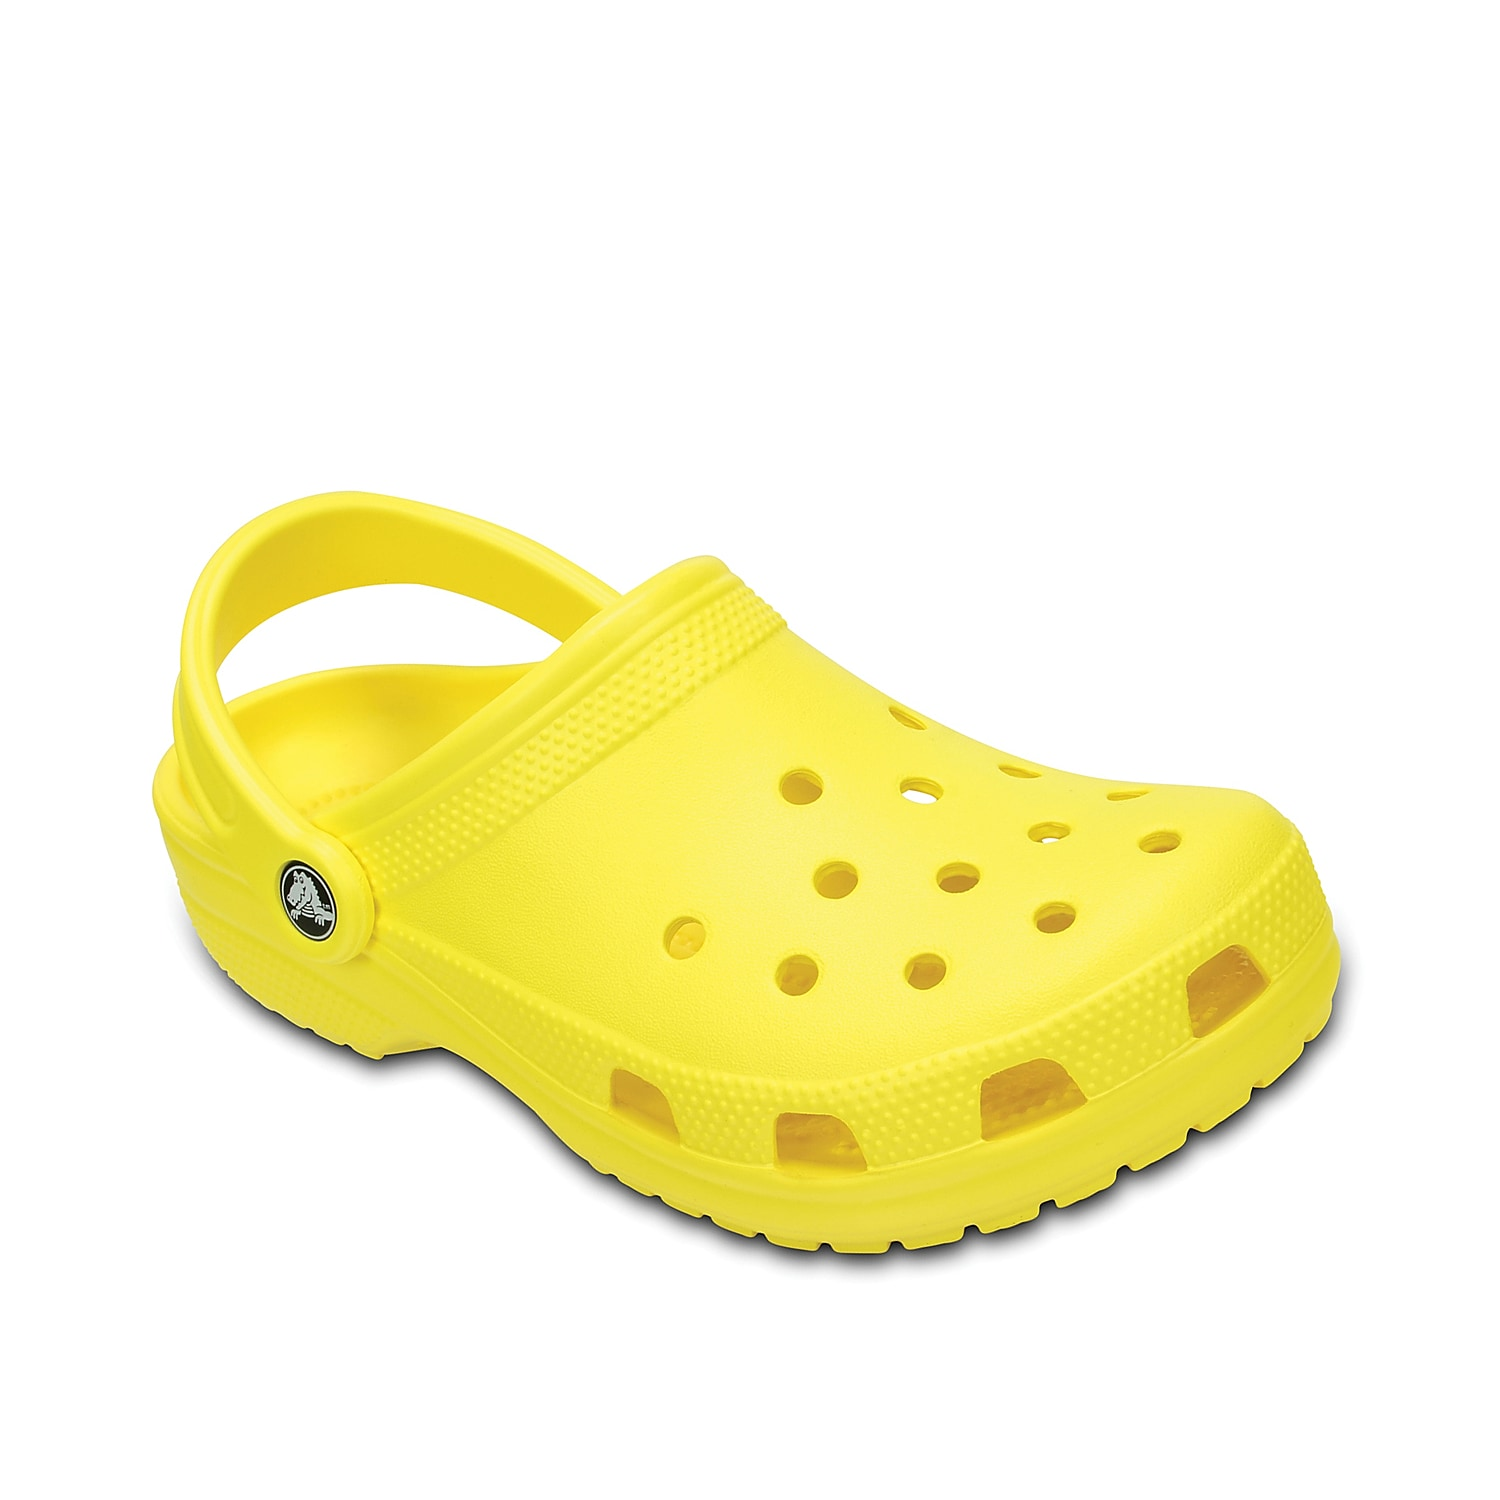 An iconic brand for active footwear, the Classic clog from Crocs is a comfortable slip-on. With a cushioned, molded Croslite™ upper and footbed these shoes are a great add to your casual wardrobe.